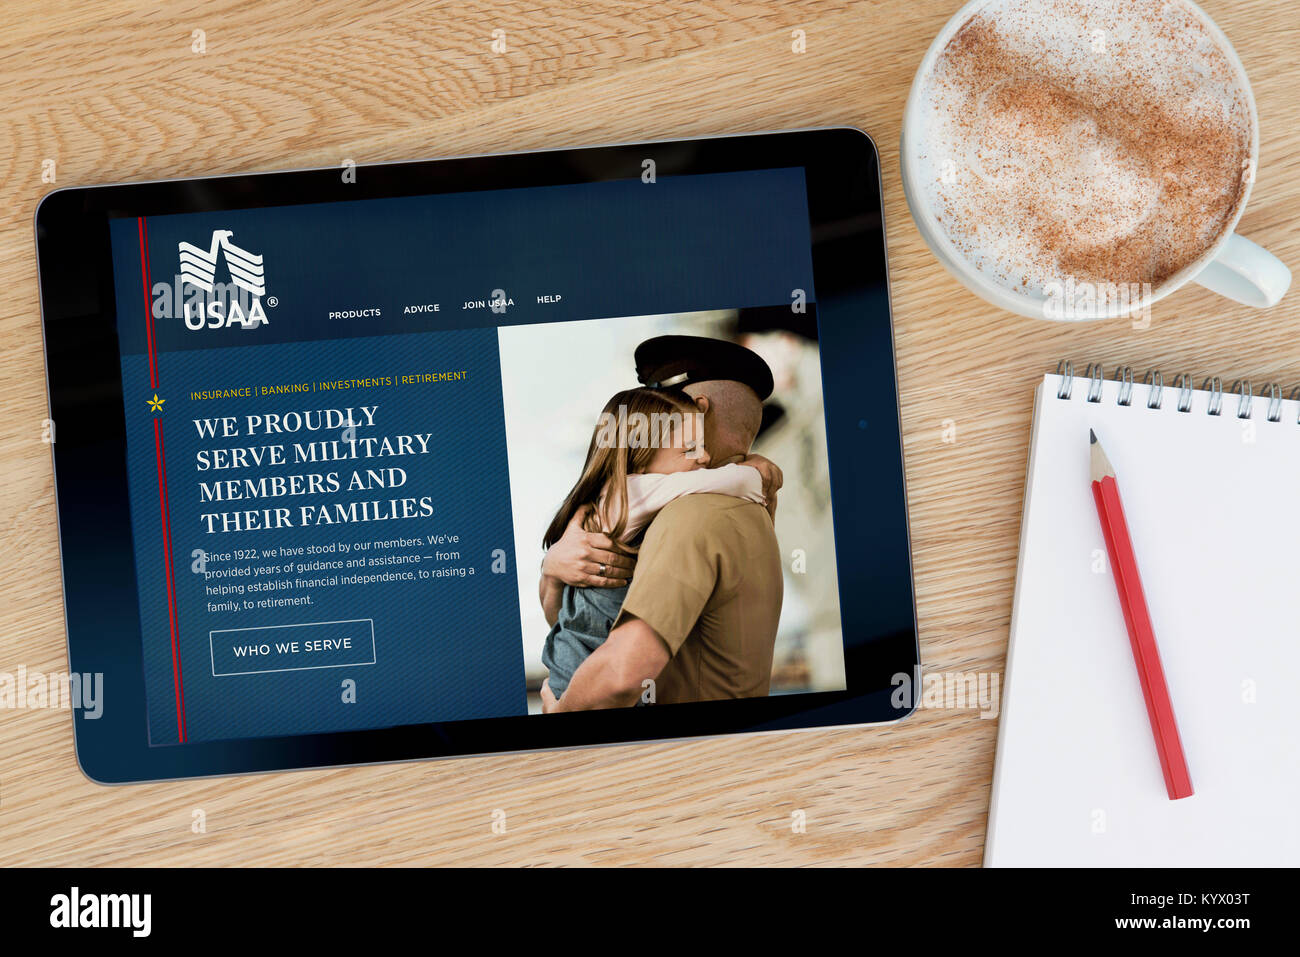 The United Services Automobile Association (USAA) website on an iPad tablet, on a wooden table and notepad, pencil - Stock Image